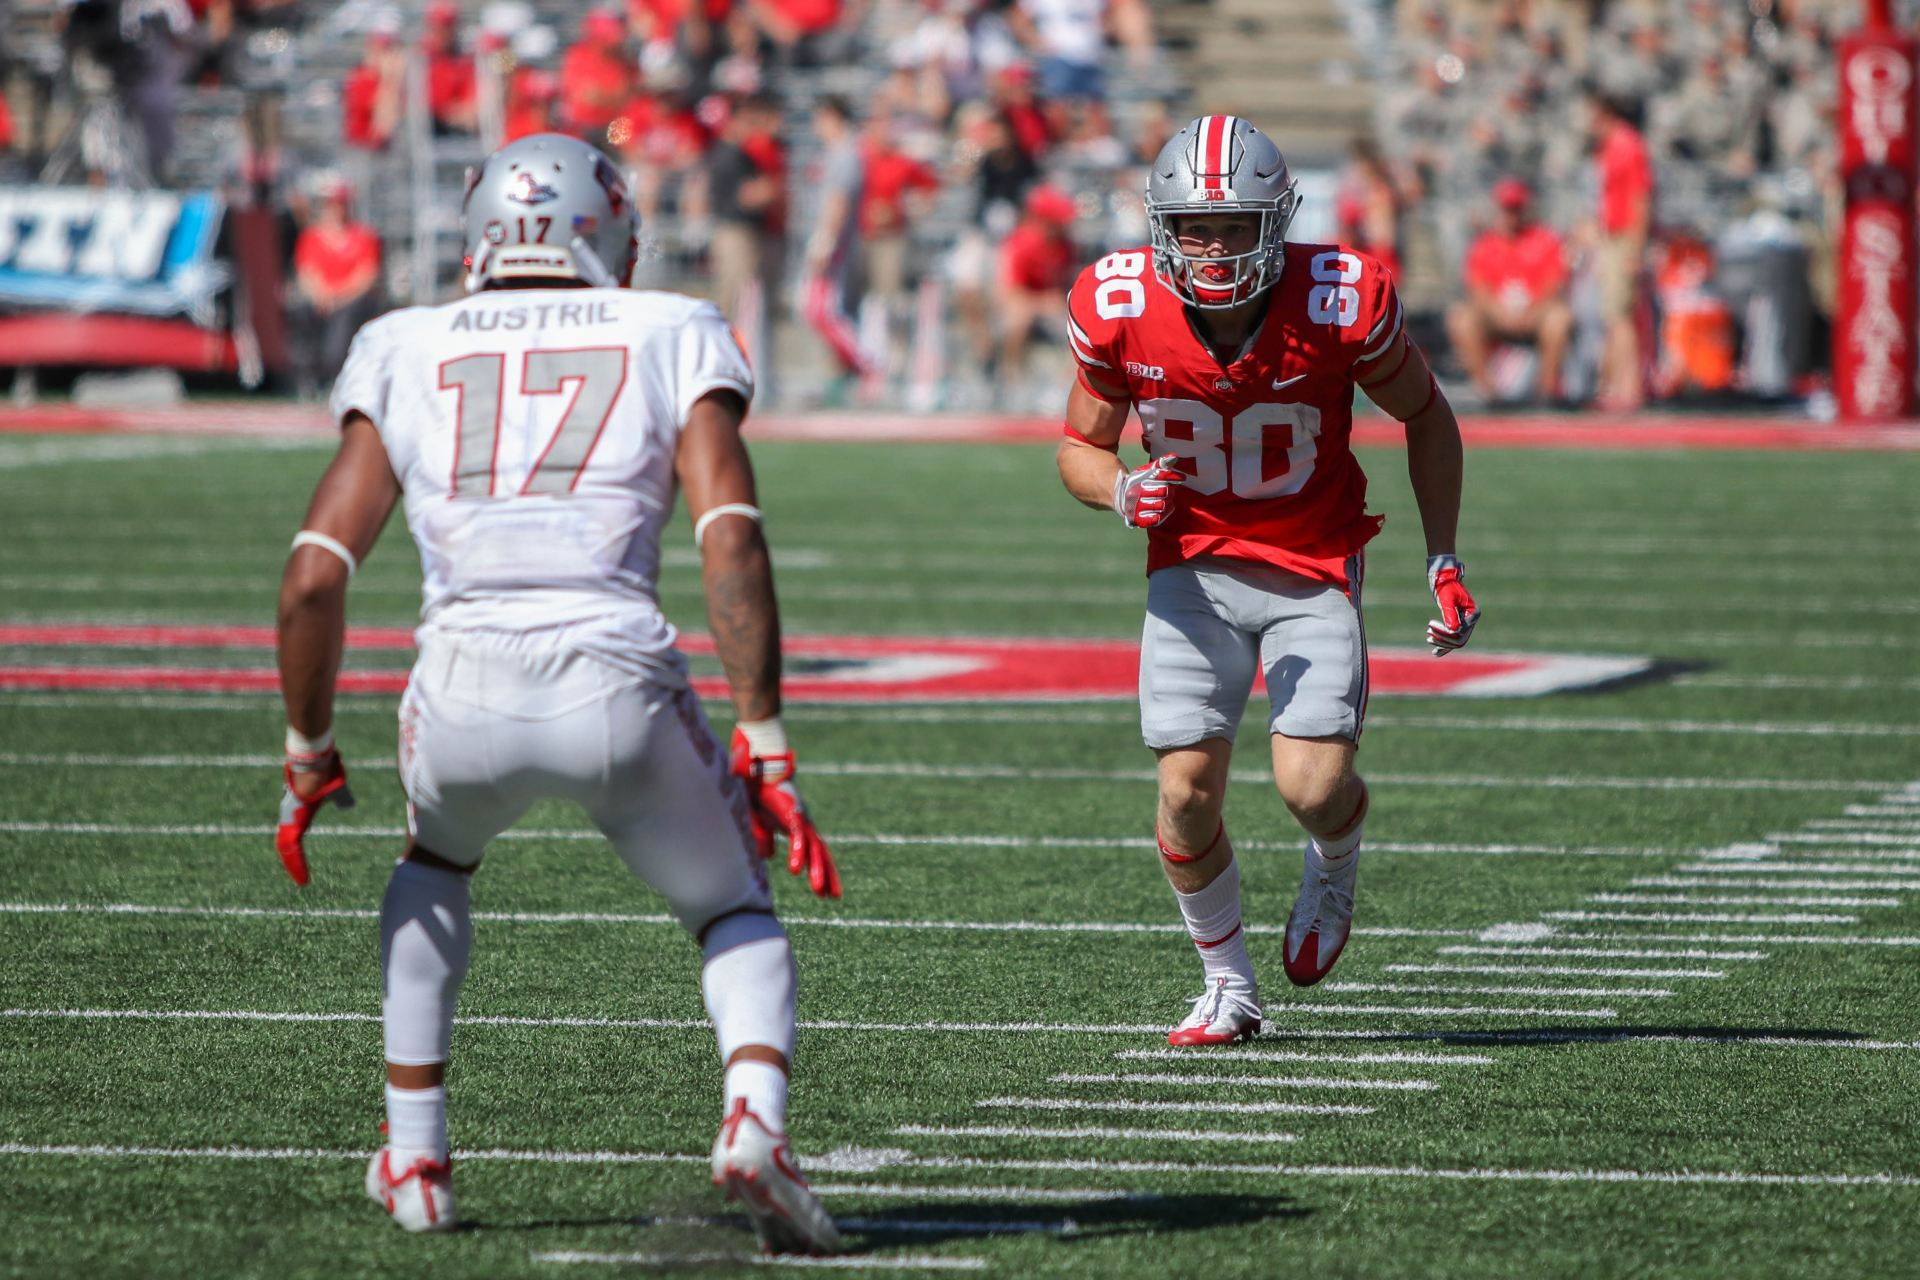 Walk-on C.J. Saunders unlikely path to Ohio State wideout